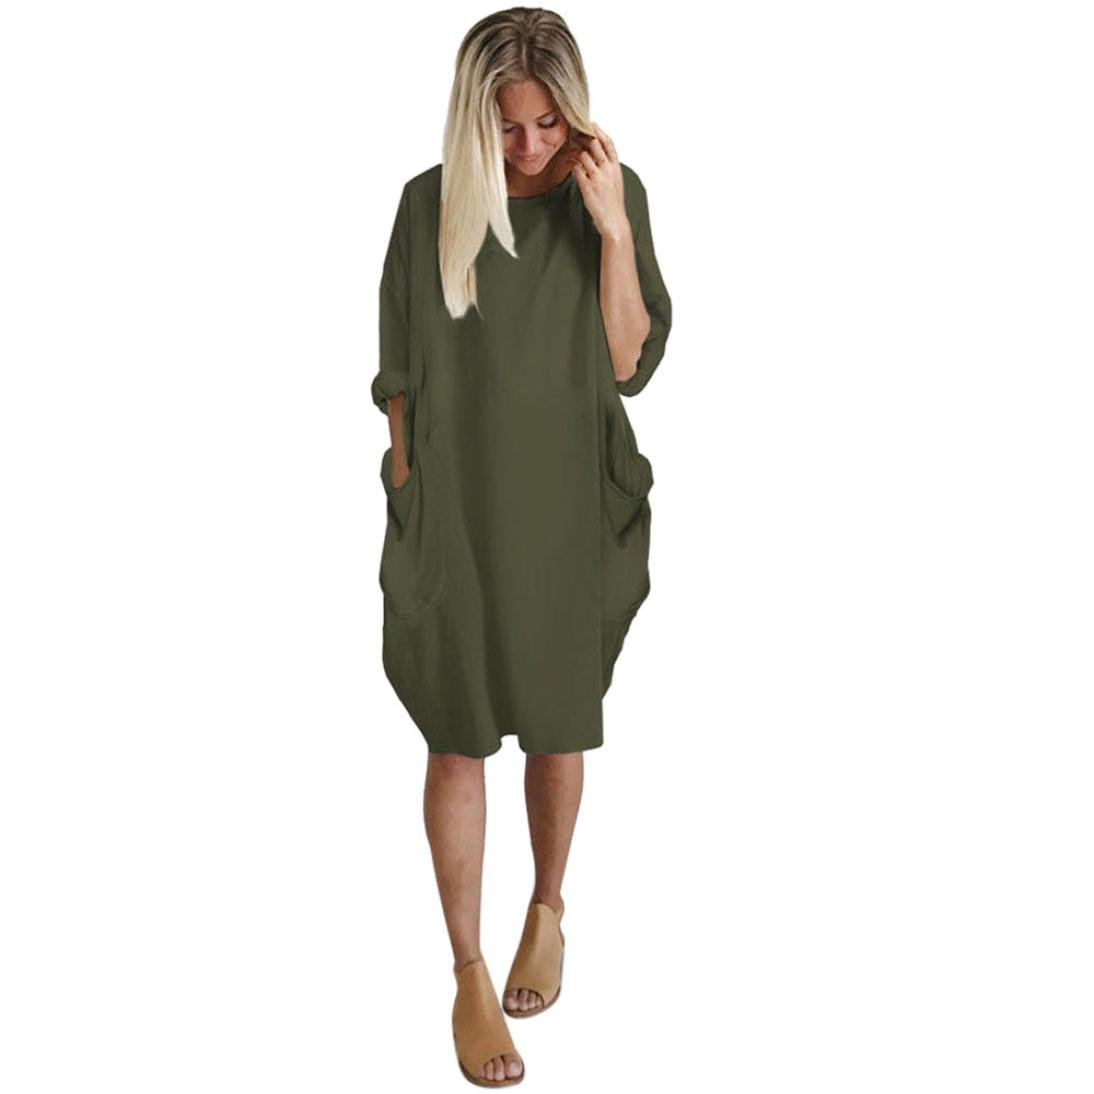 SRYSHKR Womens Pocket Loose Dress Ladies Crew Neck Casual Long Tops Dress Plus Size(L, Army Green) by SRYSHKR